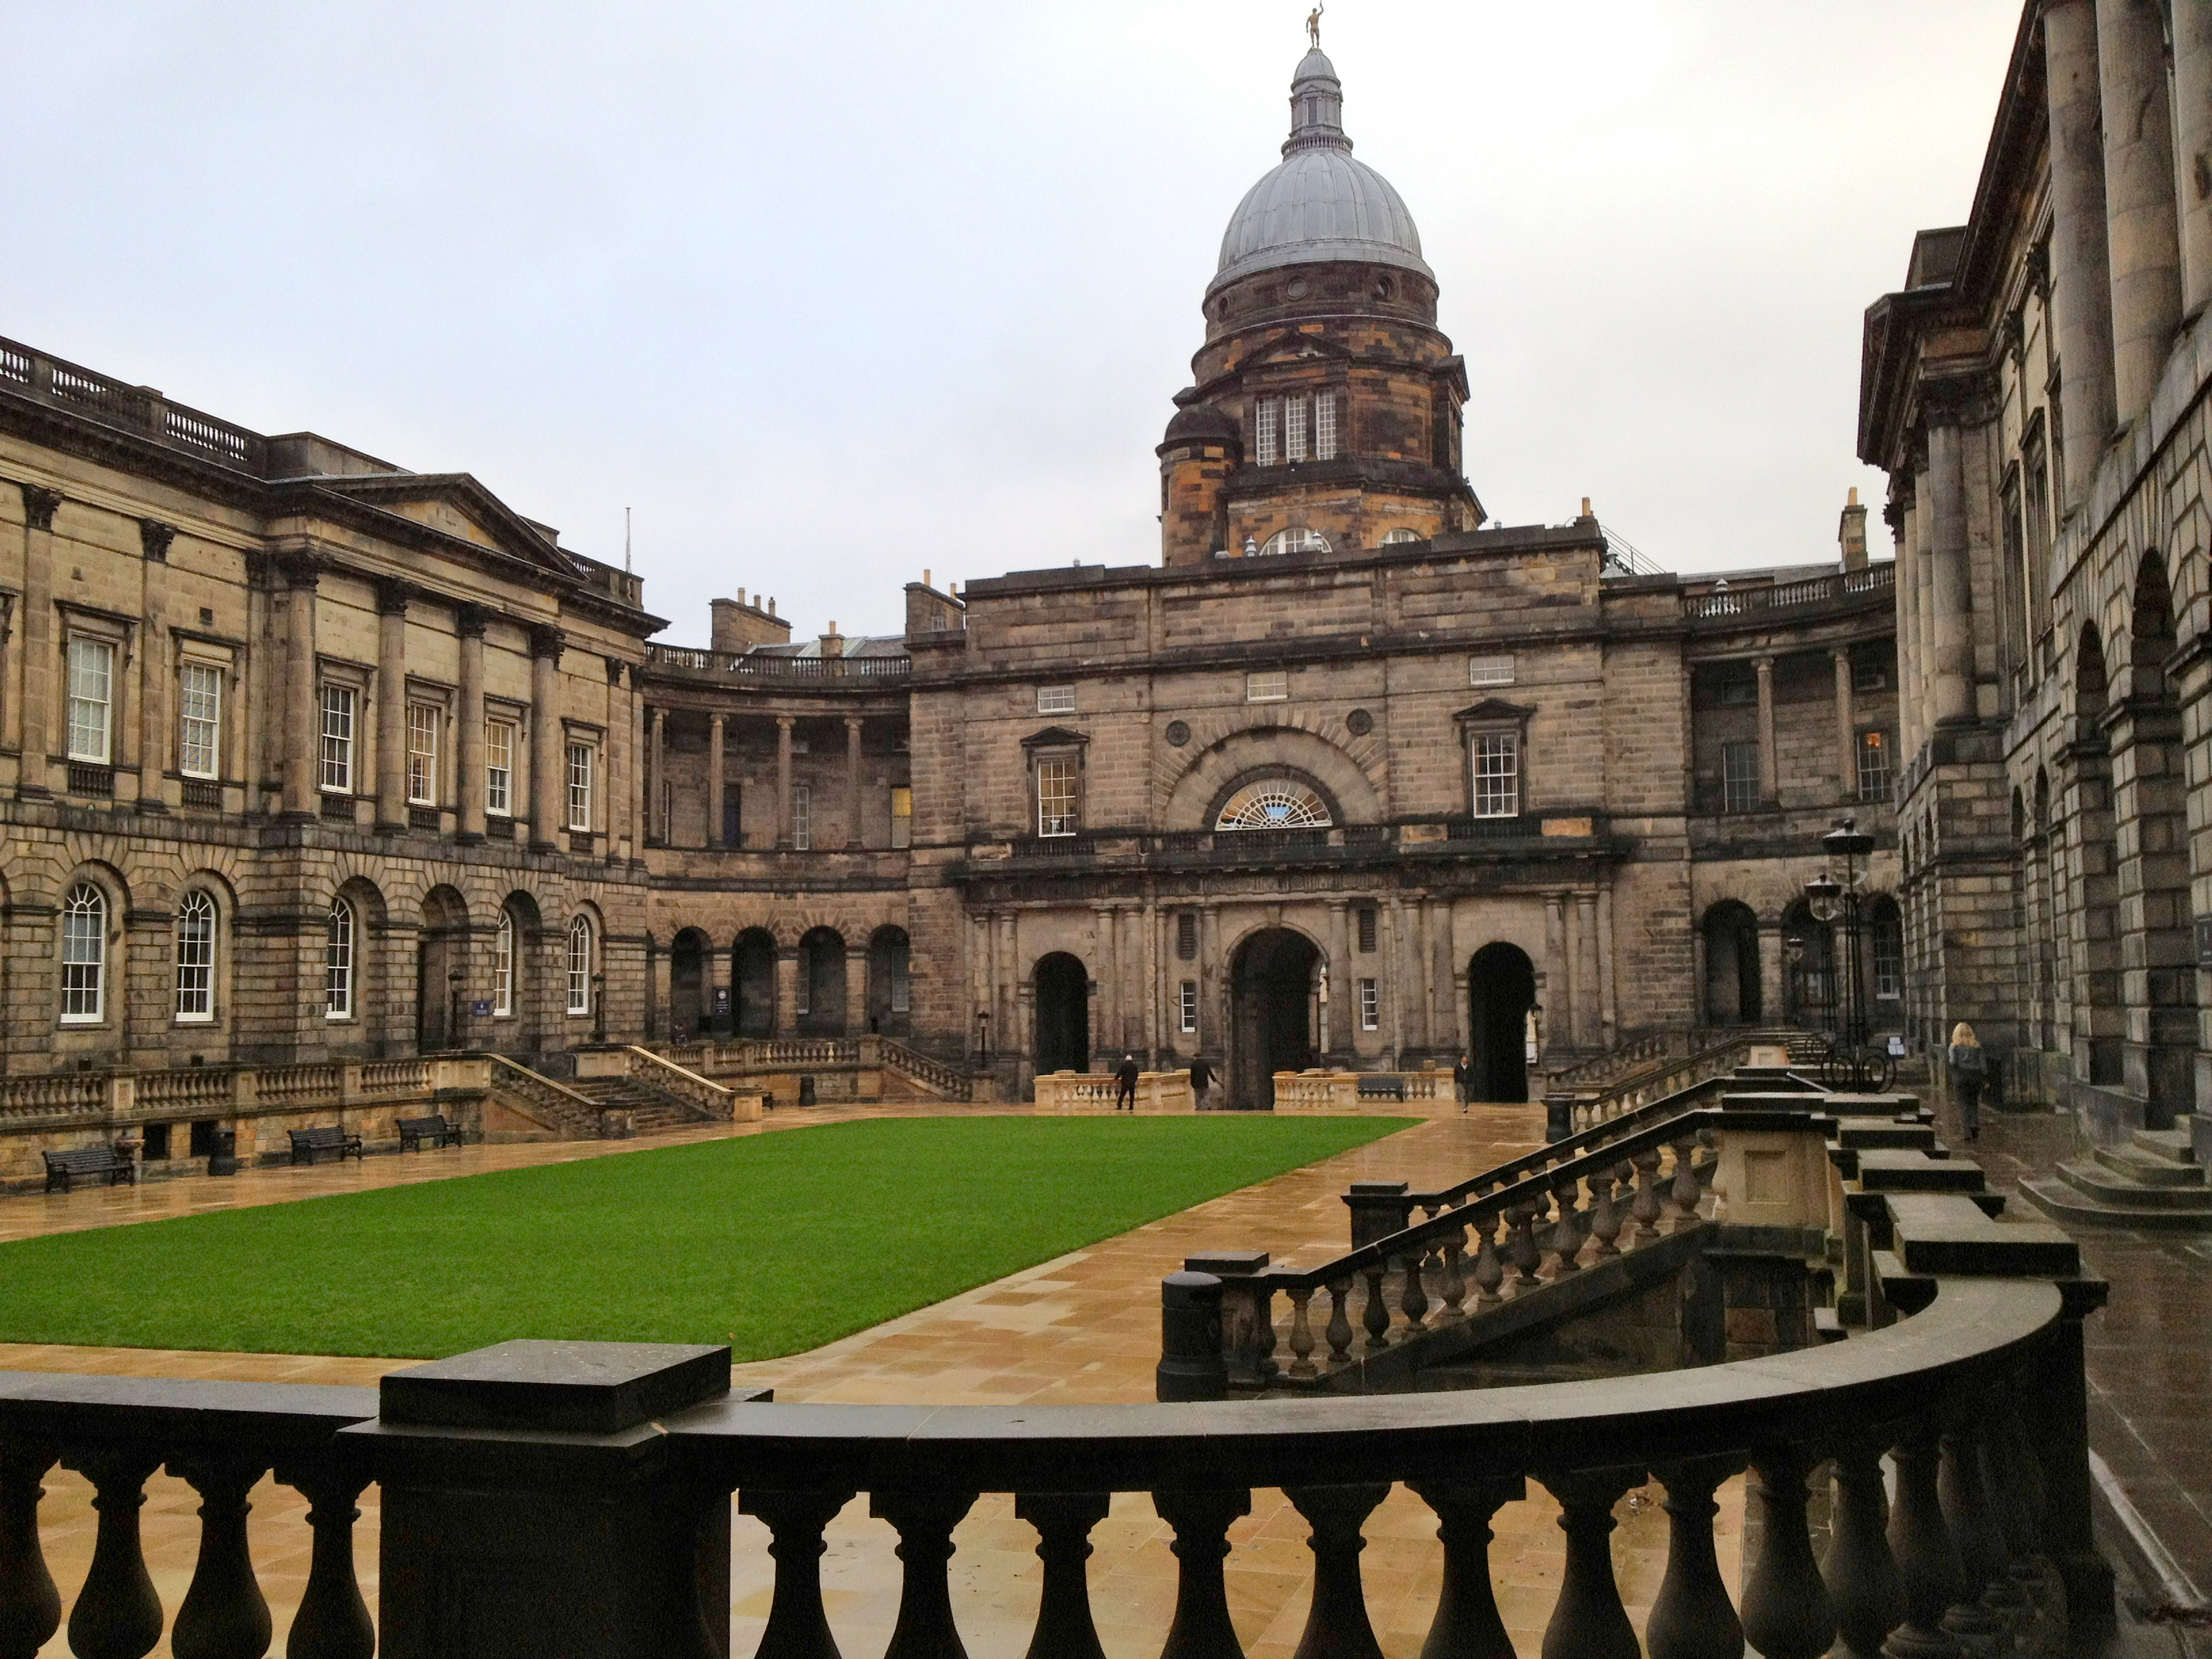 https://upload.wikimedia.org/wikipedia/commons/d/dd/Old_College,_University_of_Edinburgh.JPG